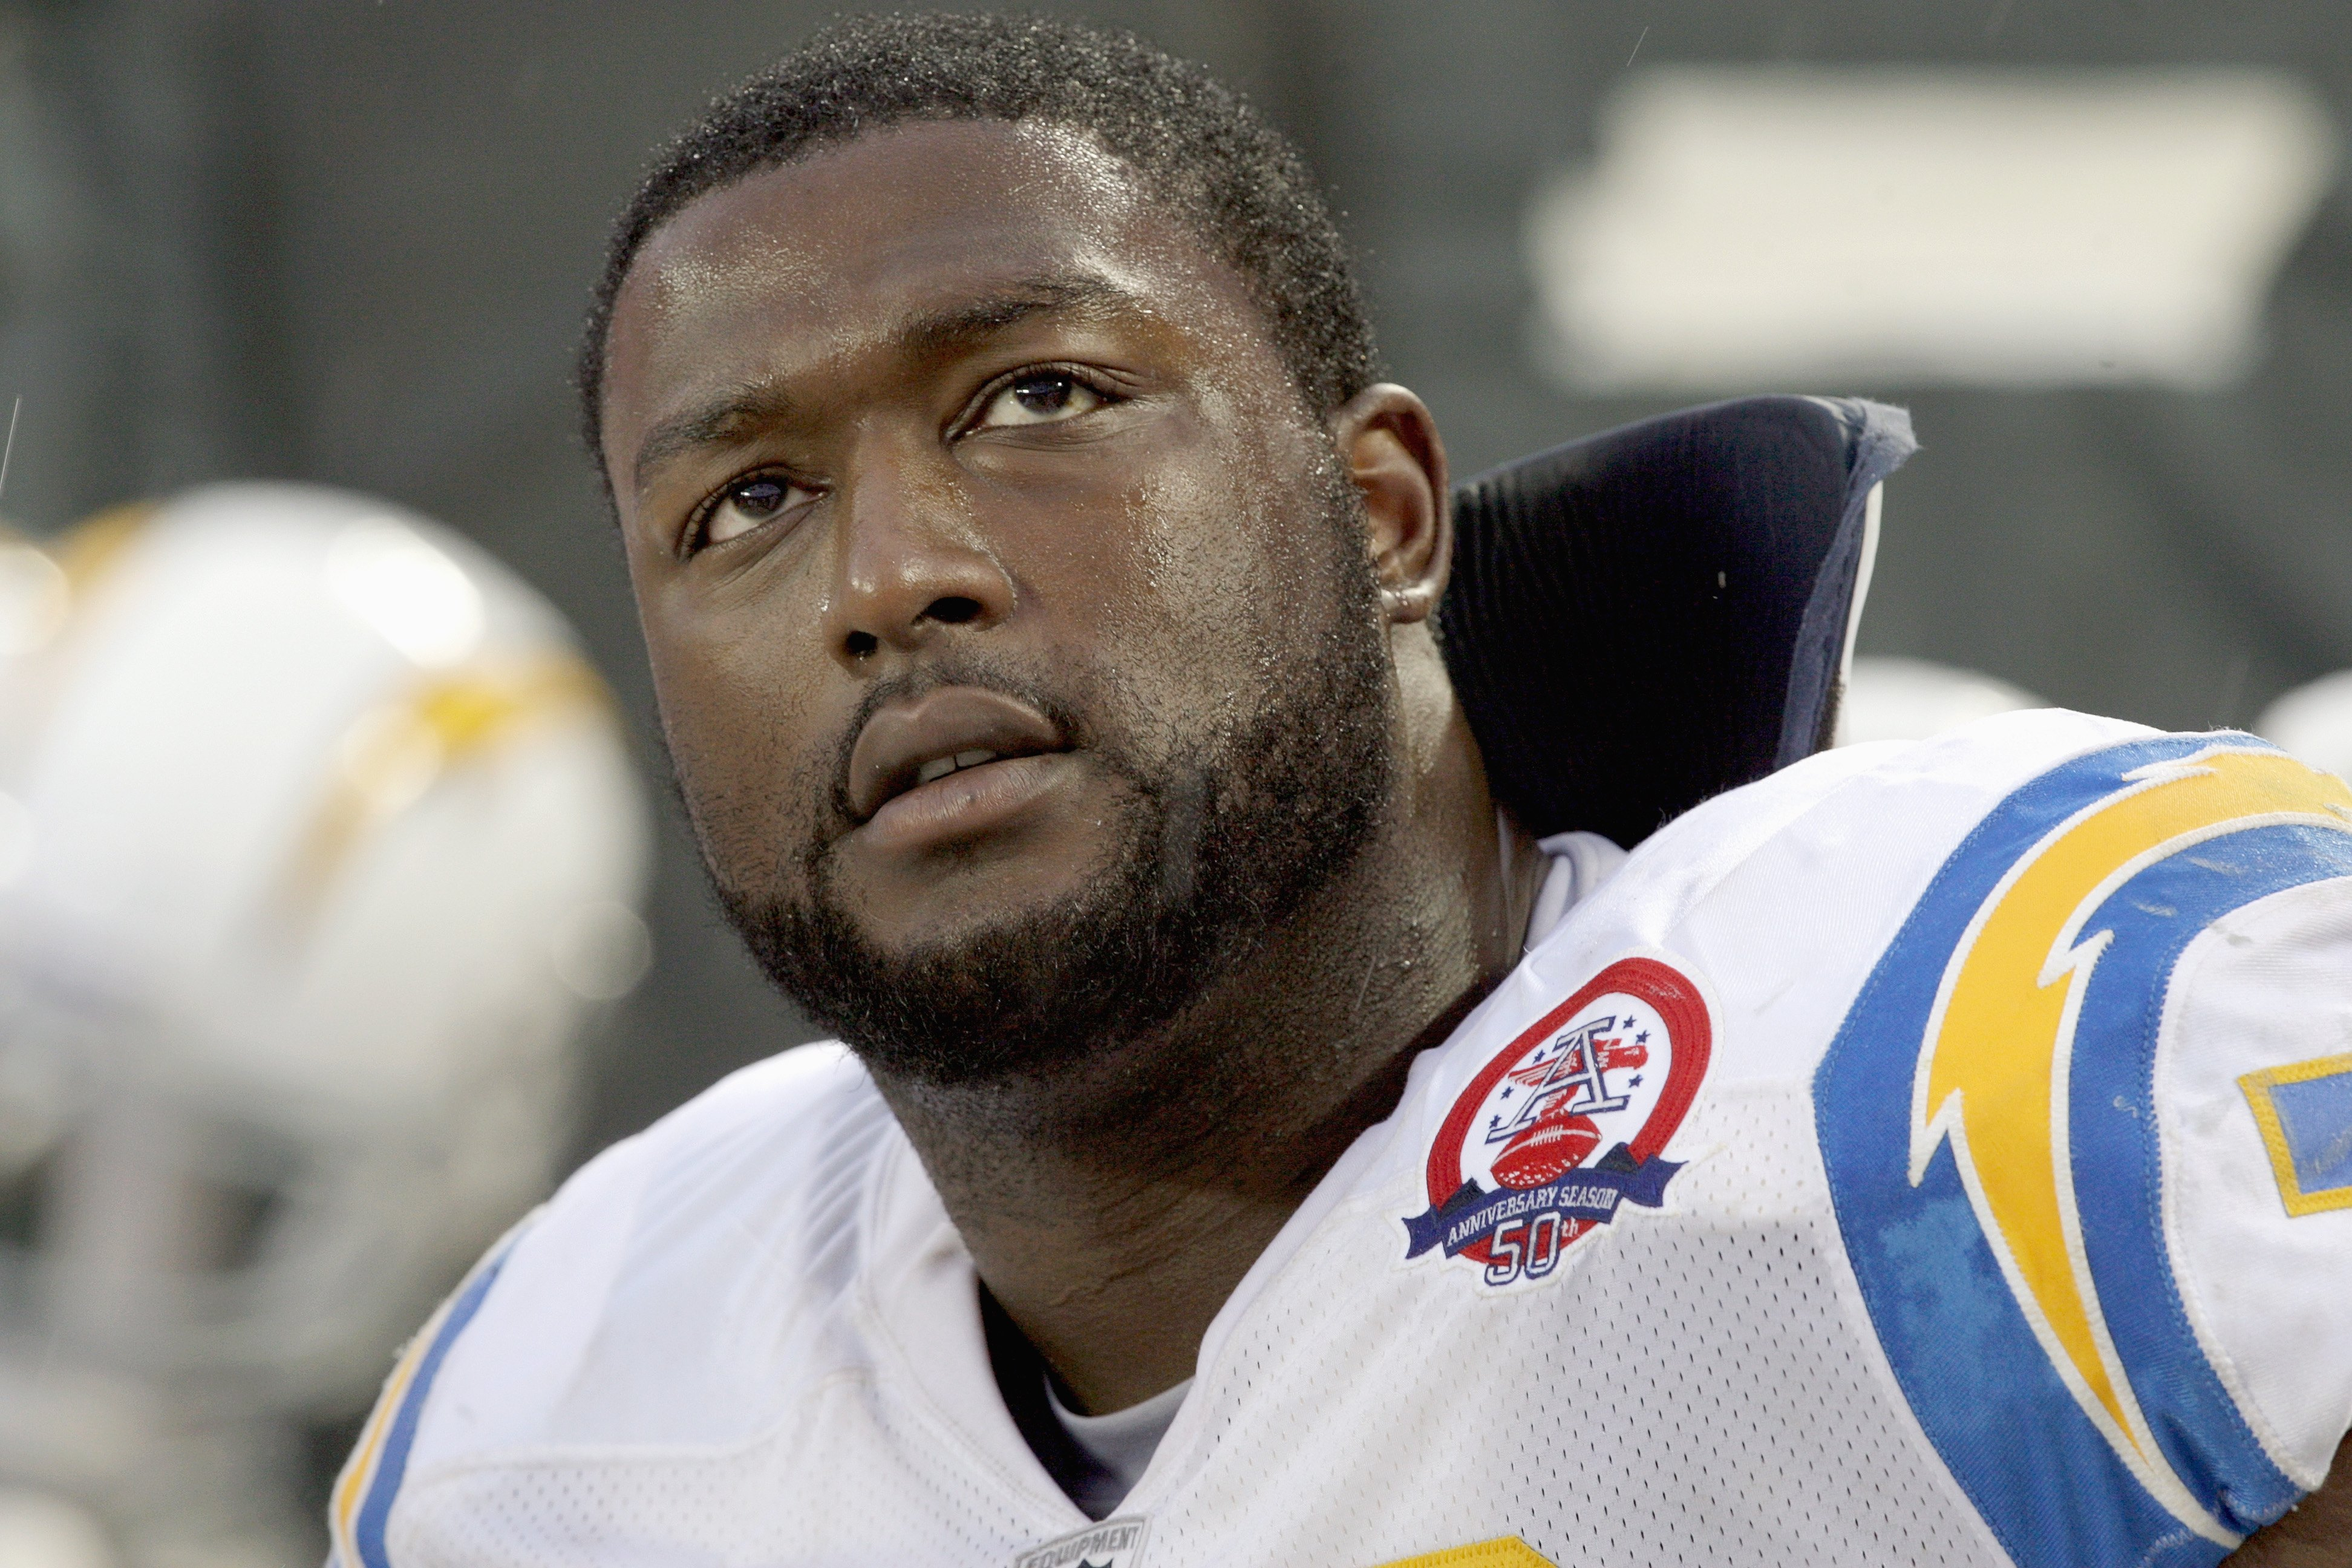 KANSAS CITY, MO - OCTOBER 25:  Marcus McNeill #73 of the San Diego Chargers looks on from the bench during the game against the Kansas City Chiefs on October 25, 2009 at Arrowhead Stadium in Kansas City, Missouri. (Photo by Jamie Squire/Getty Images)